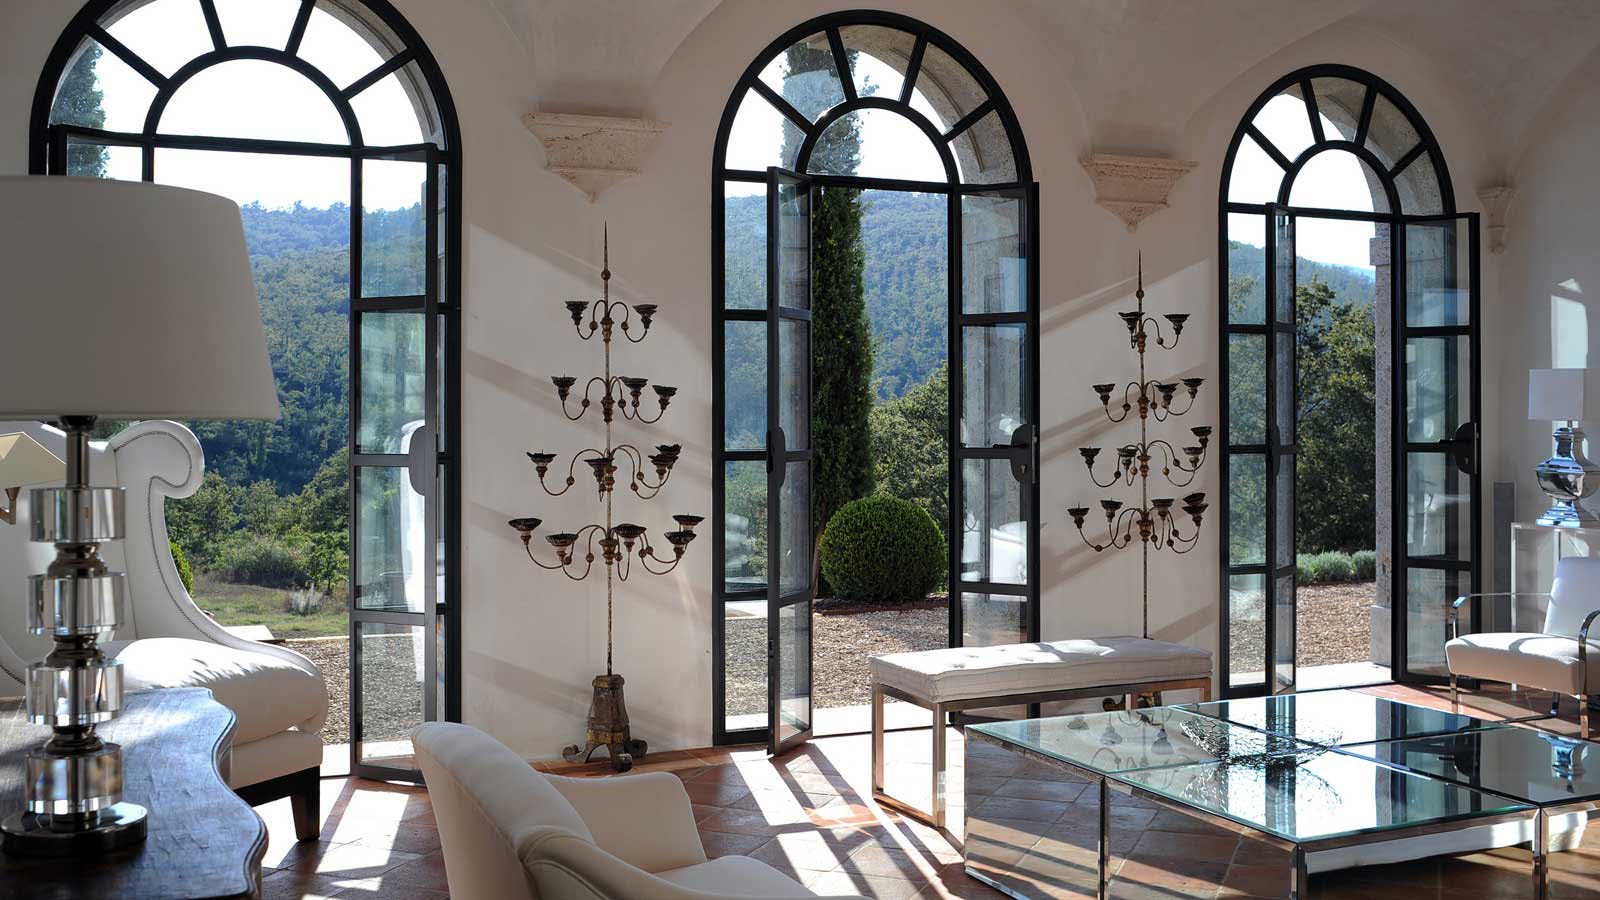 Palazzo castello di reschio 1 idesignarch interior for Hotel design umbria